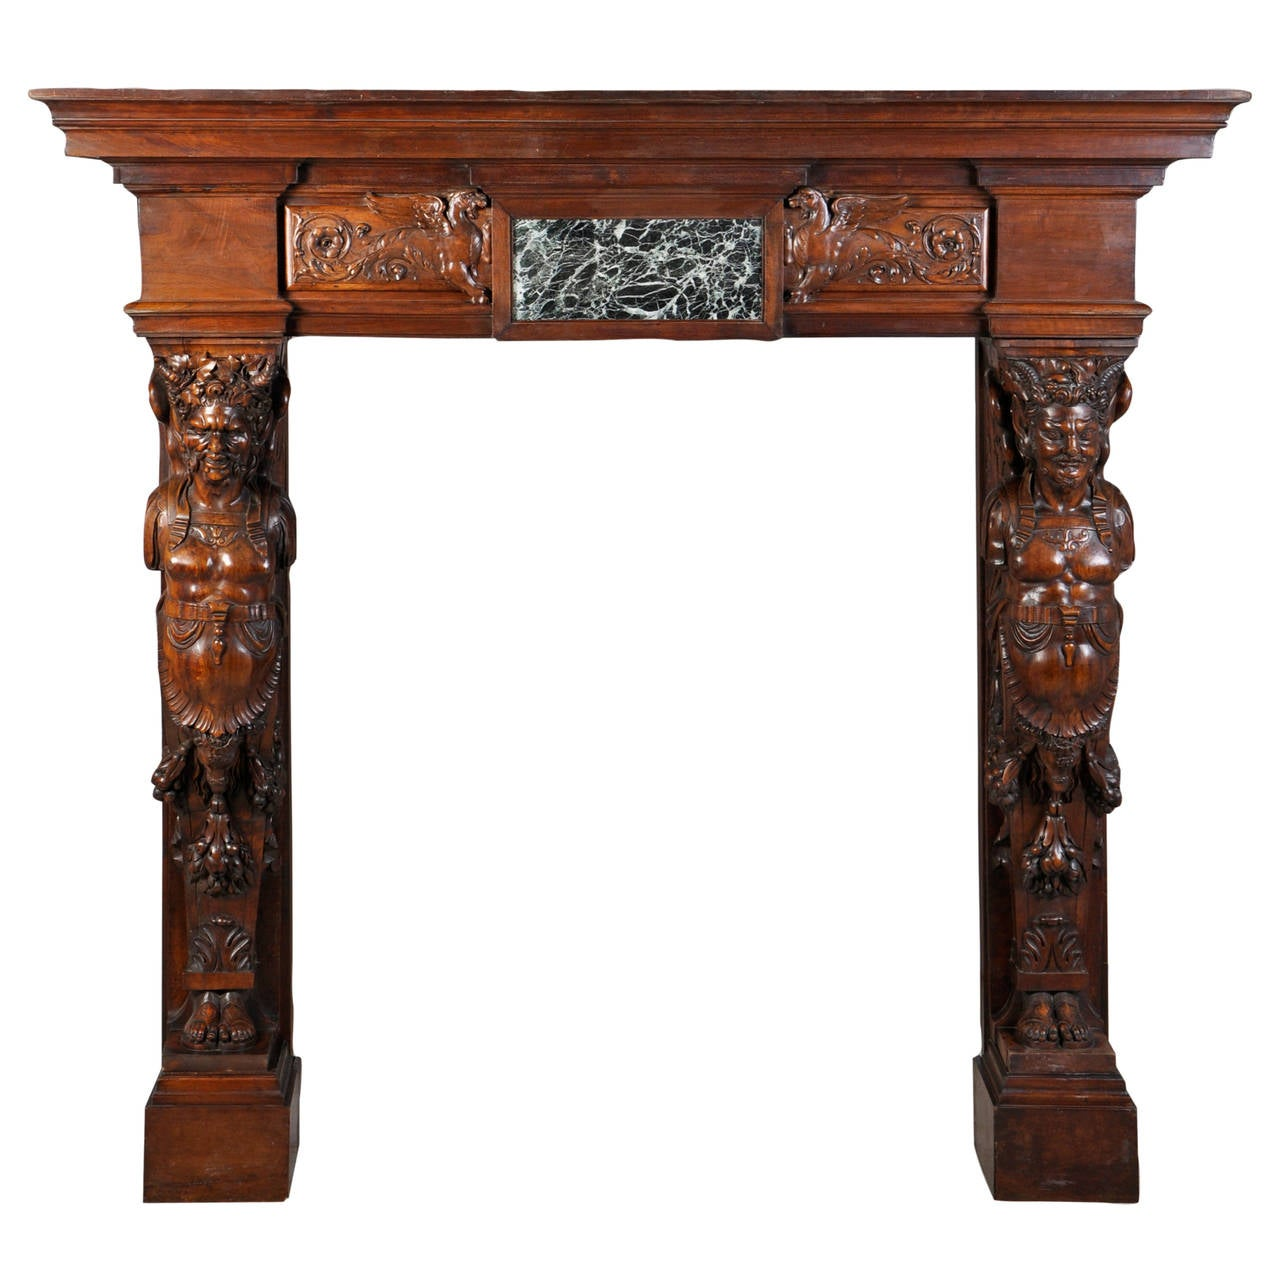 19th century antique french fireplace mantel carved in walnut for